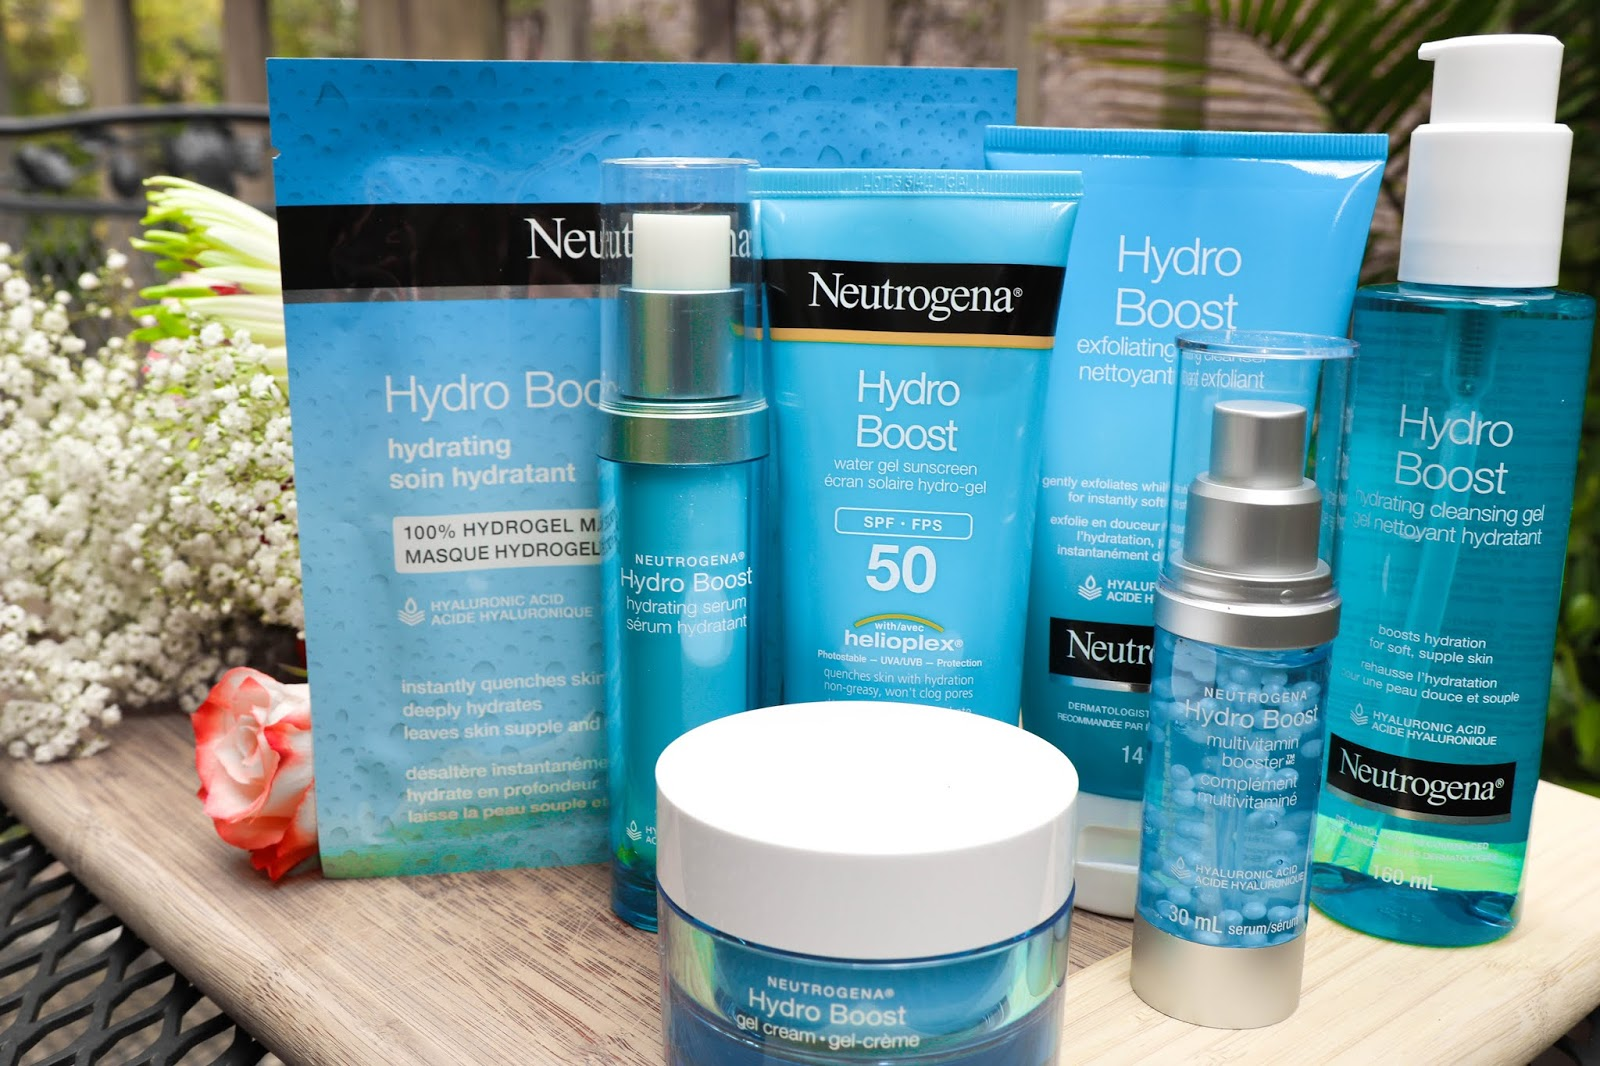 neutrogena hydro boost review skin care drugstore dry skin